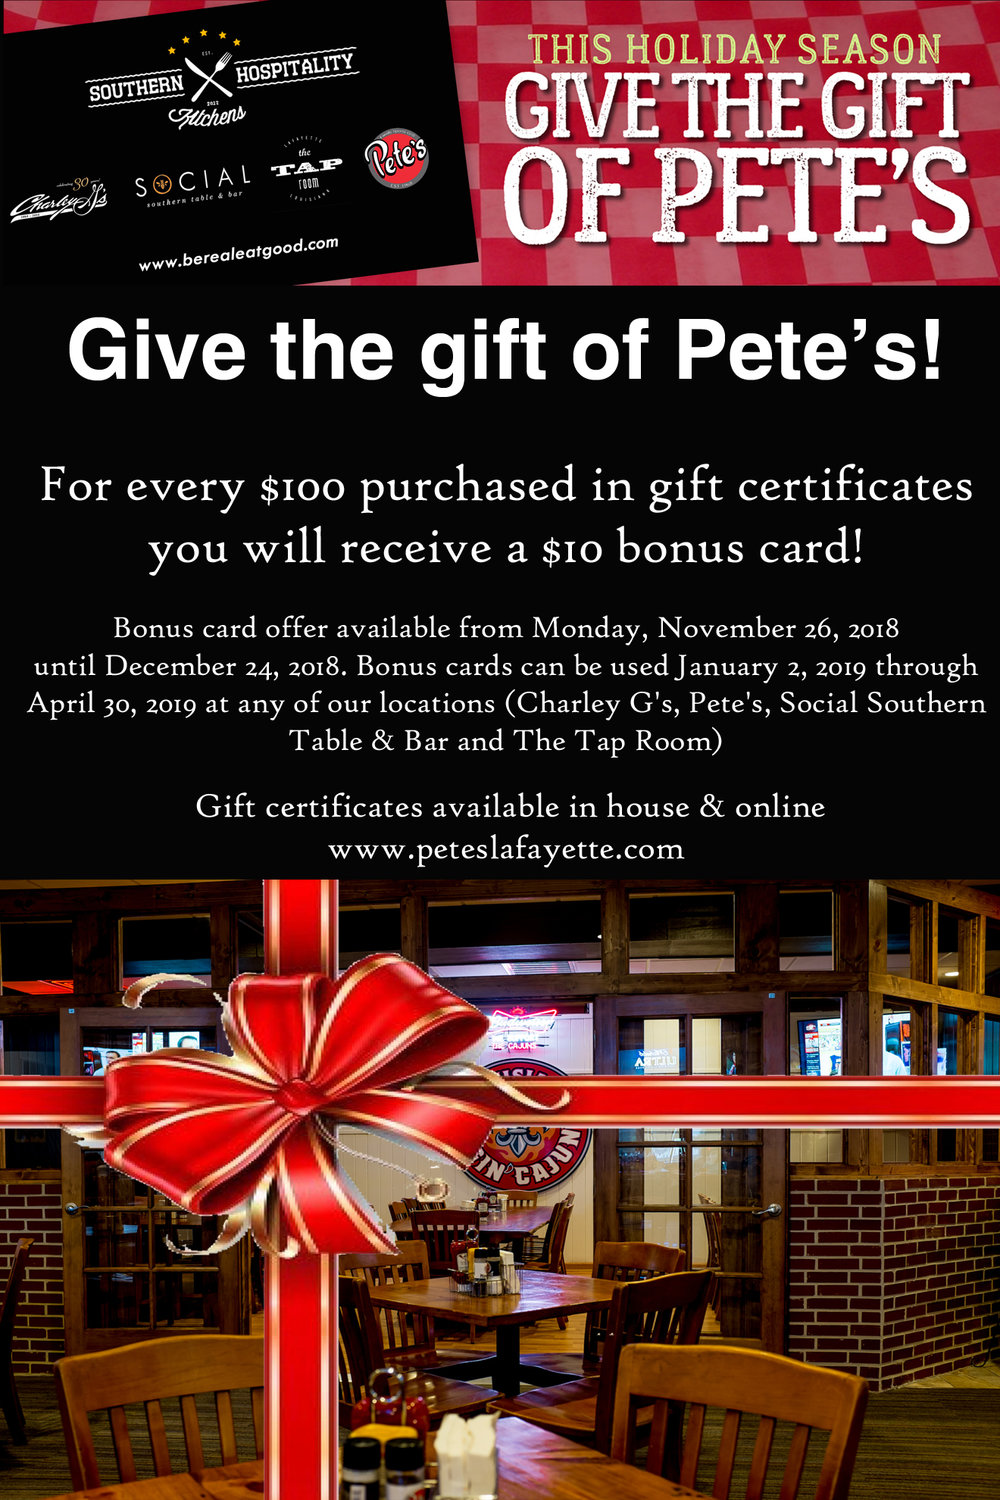 gift card as gifts-Petes copy.jpg